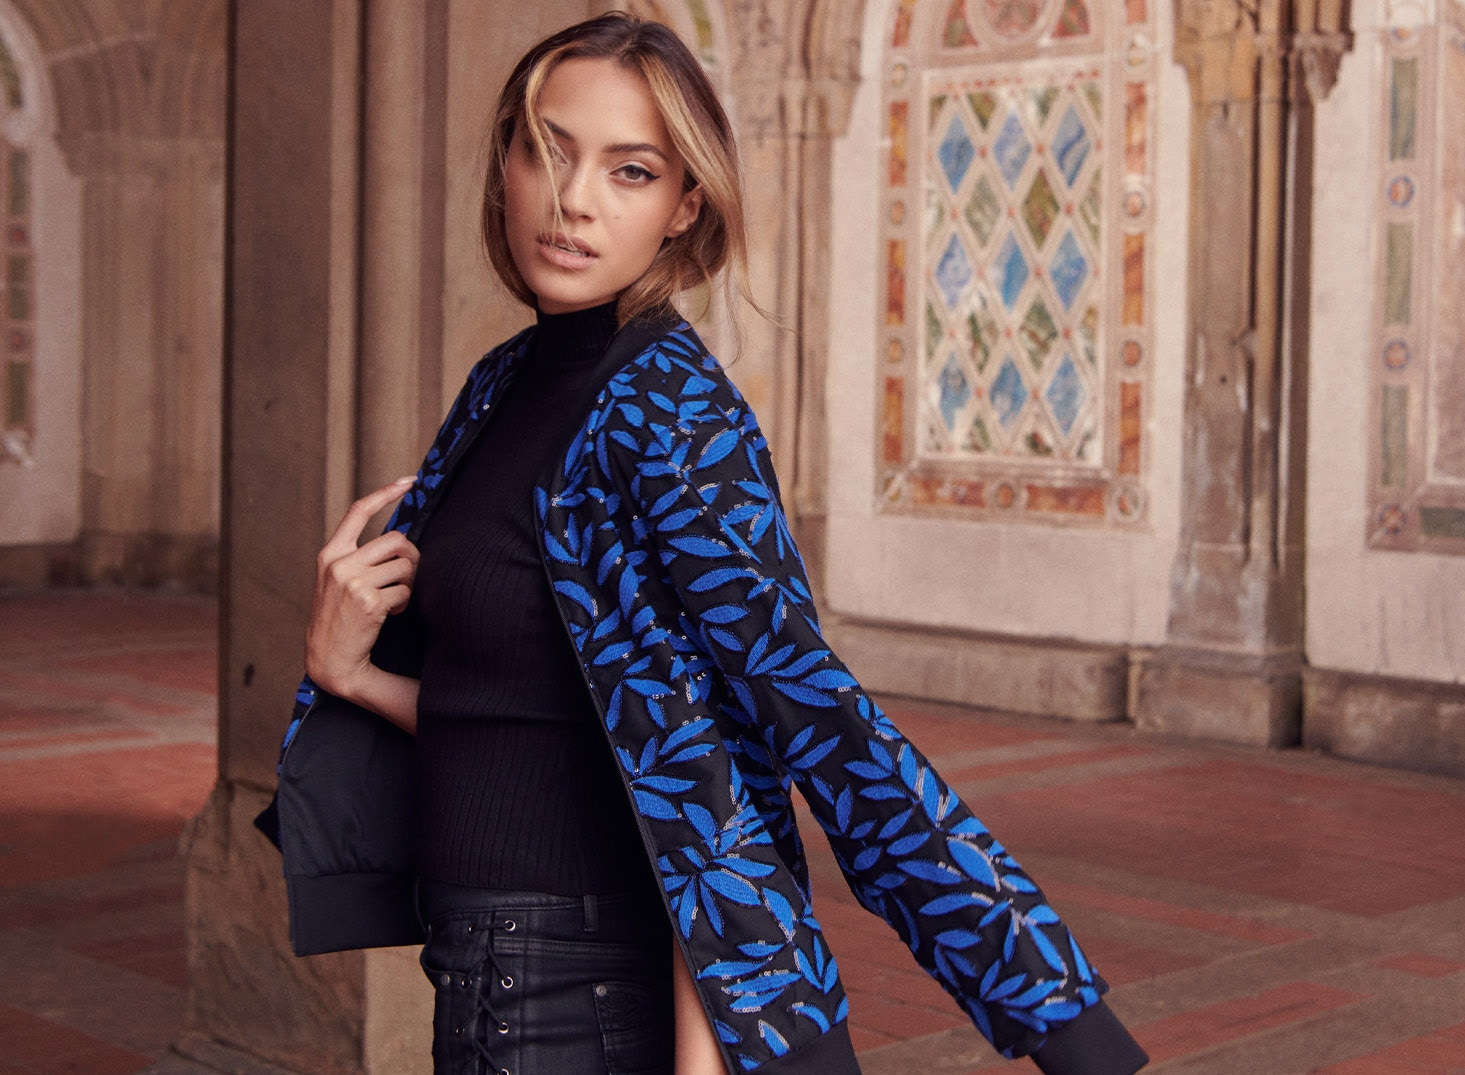 Explore the curated edit featuring silhouettes in this season's trending color - ultra blue